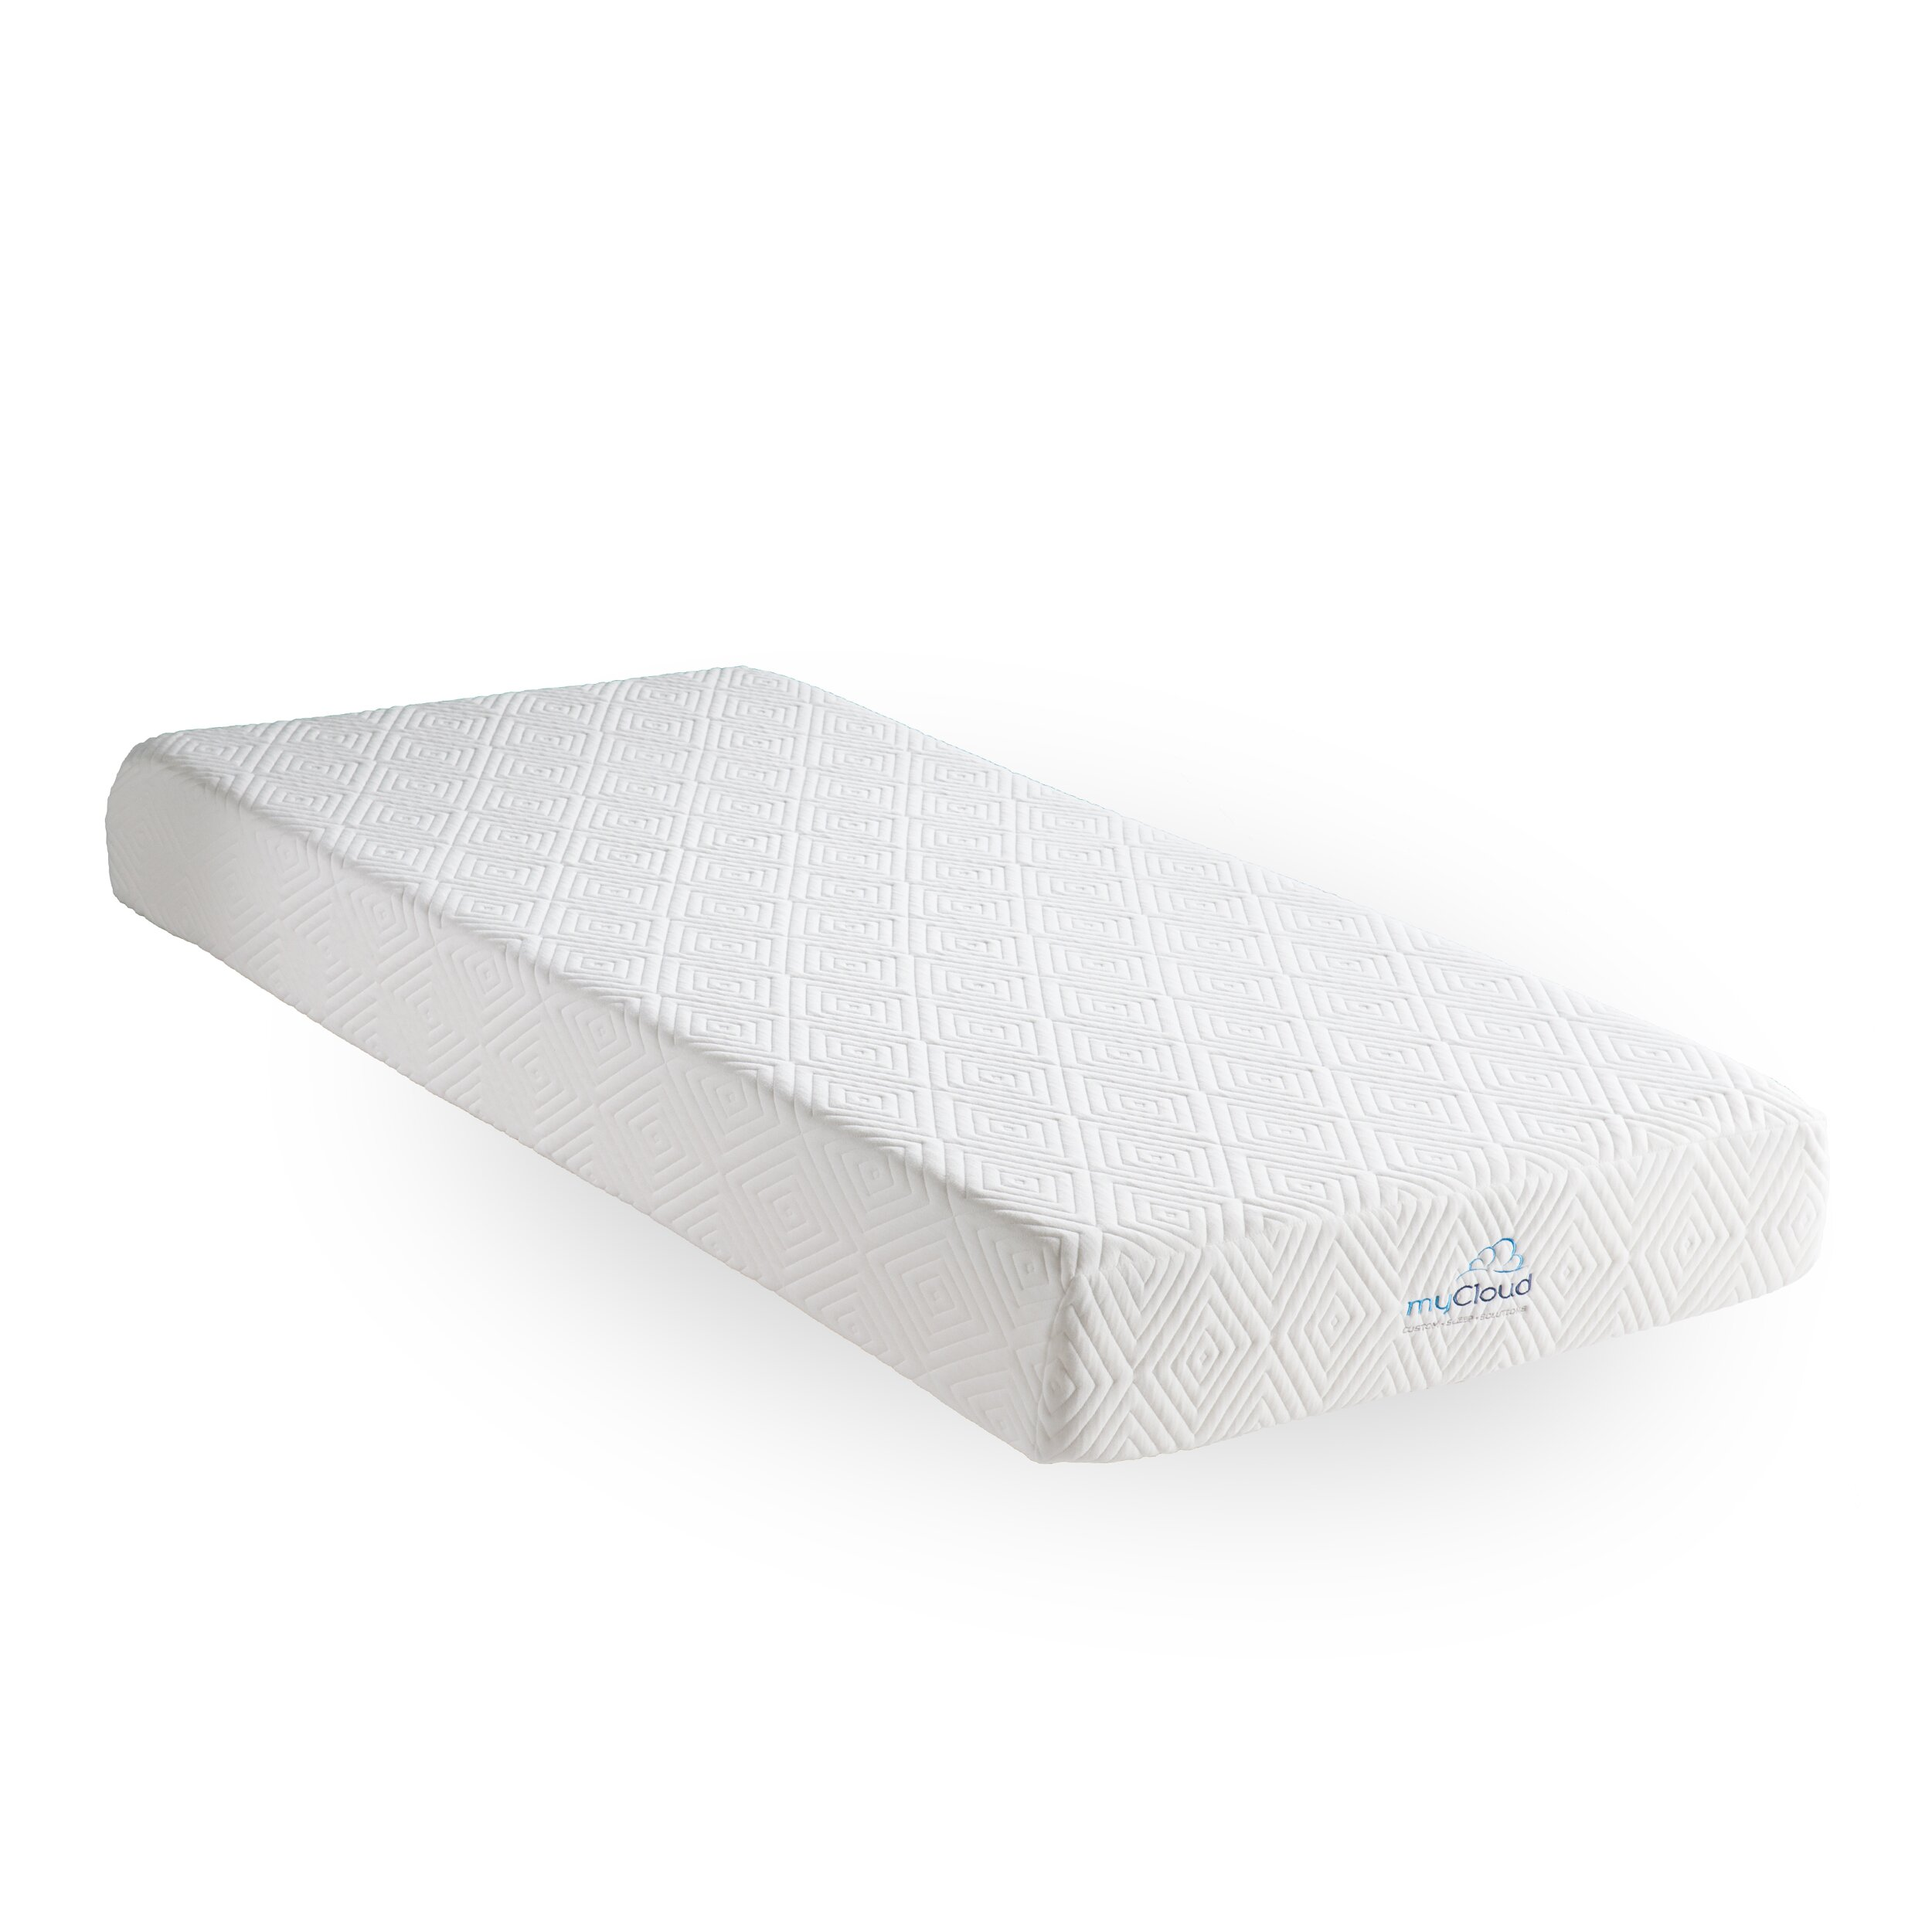 firm memory foam mattress reviews